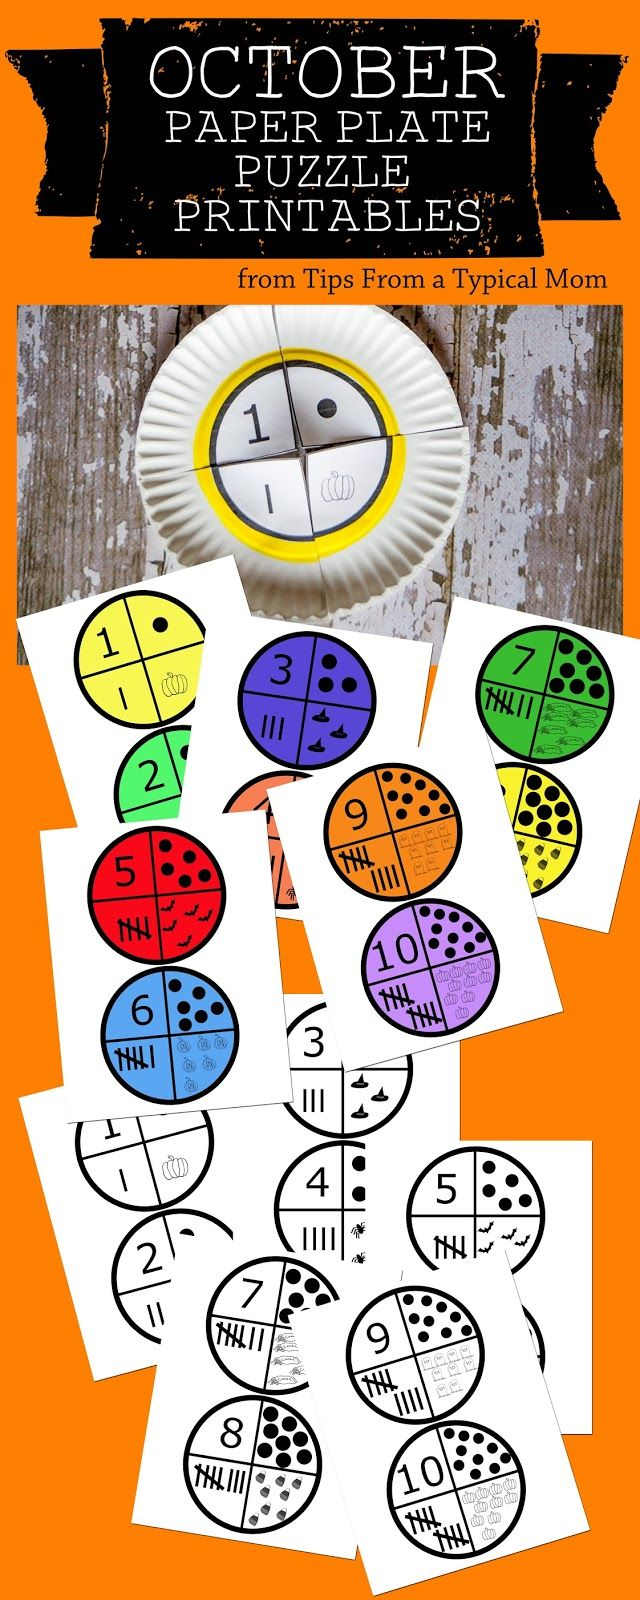 paper plate puzzles: fun number learning for kids | guest post by @MomBlogTips on teachmama.com with free printable #weteach